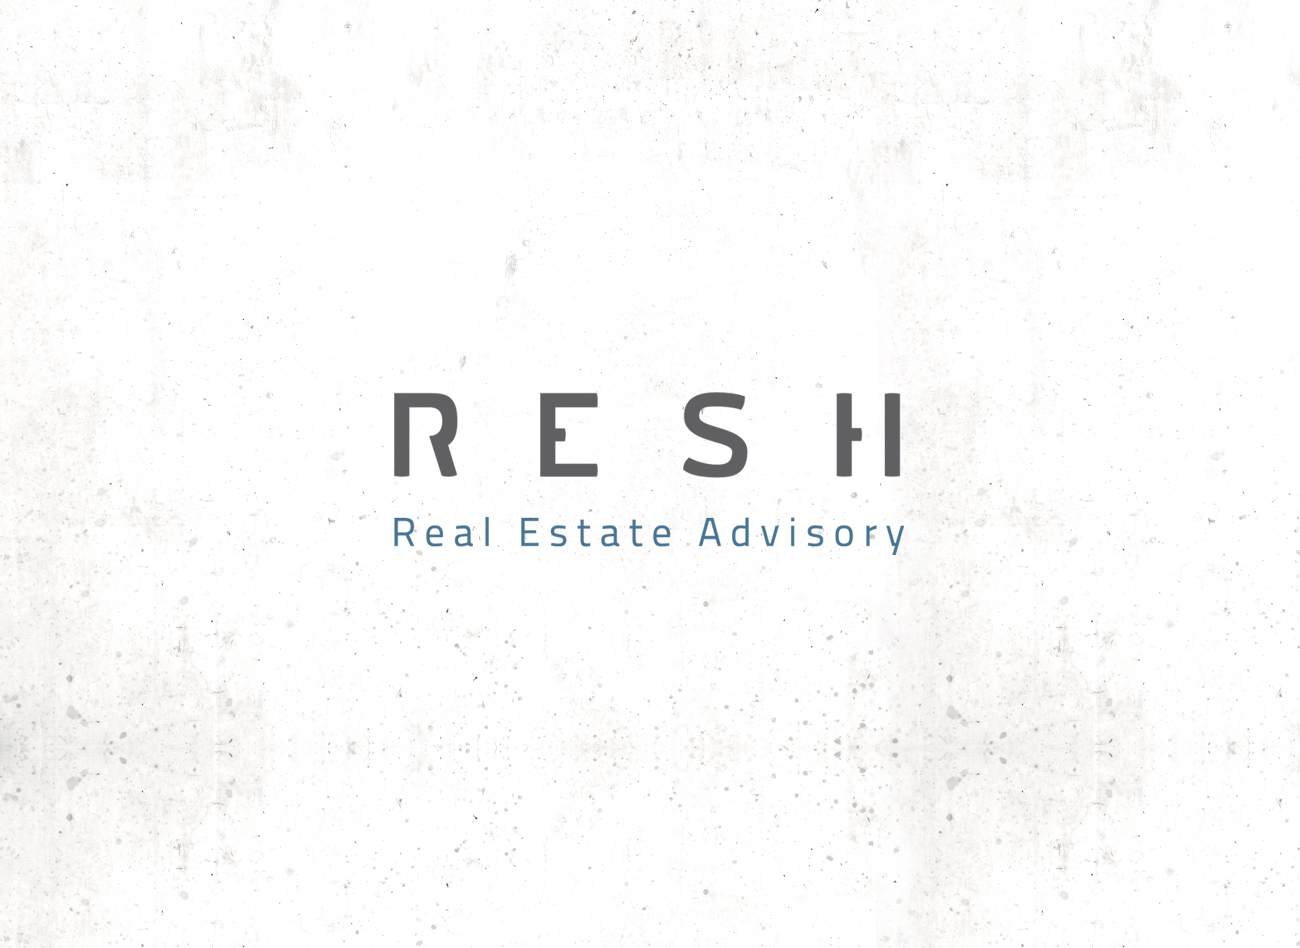 Logogestaltung / RESH Real Estate Advisory